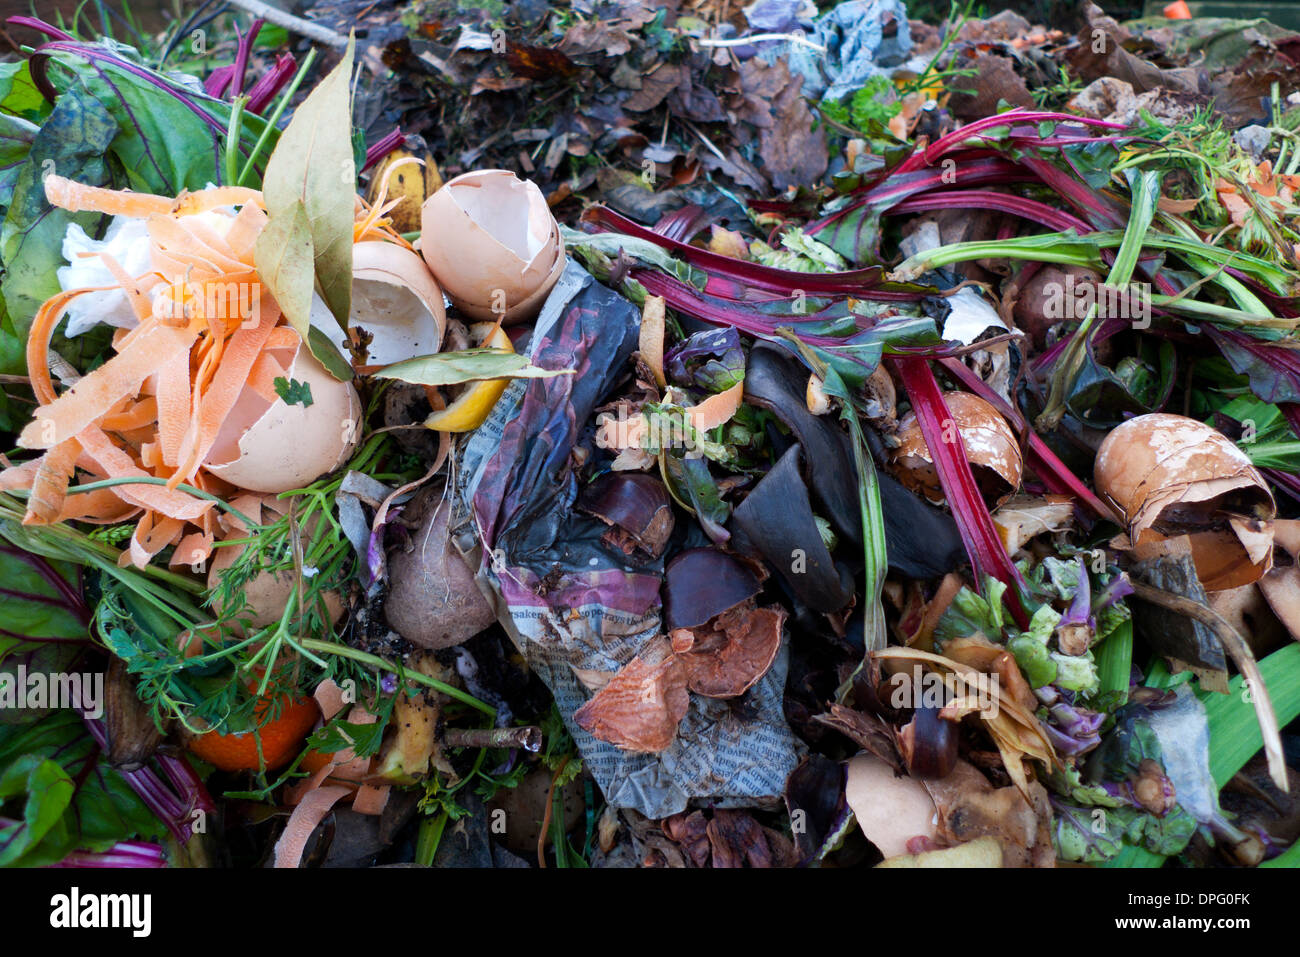 Garden compost heap in bin with eggshells and rotting vegetable kitchen food waste in Wales UK   KATHY DEWITT - Stock Image